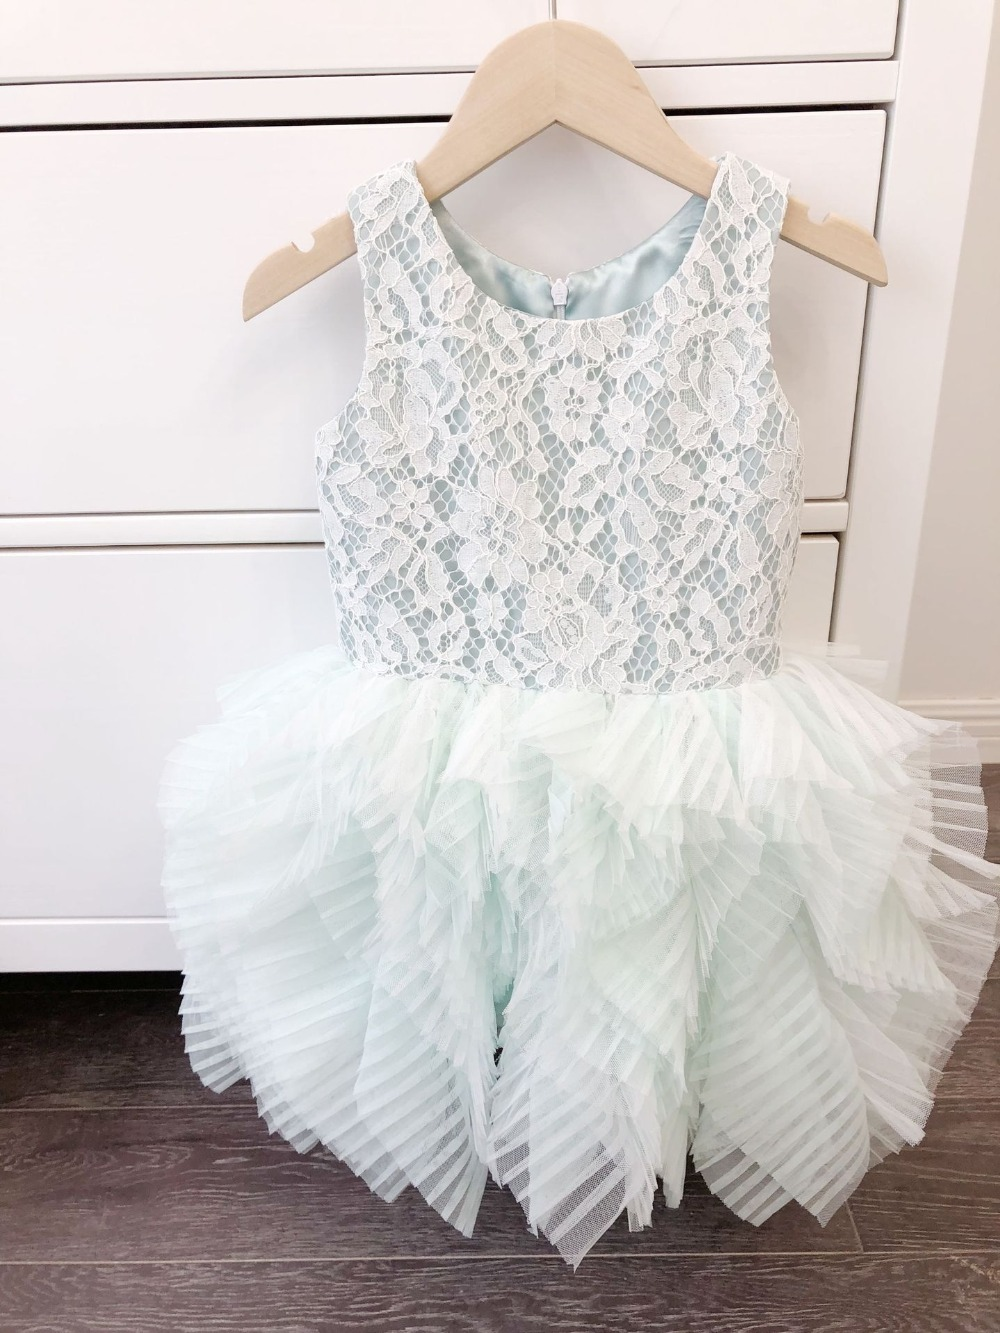 kids dresses for girls baby clothes girl lace flower summer princess dresses high quality tutu dress girls party dresses 2017 fashion summer hot sales kid girls princess dress toddler baby party tutu lace bow flower dresses fashion vestido